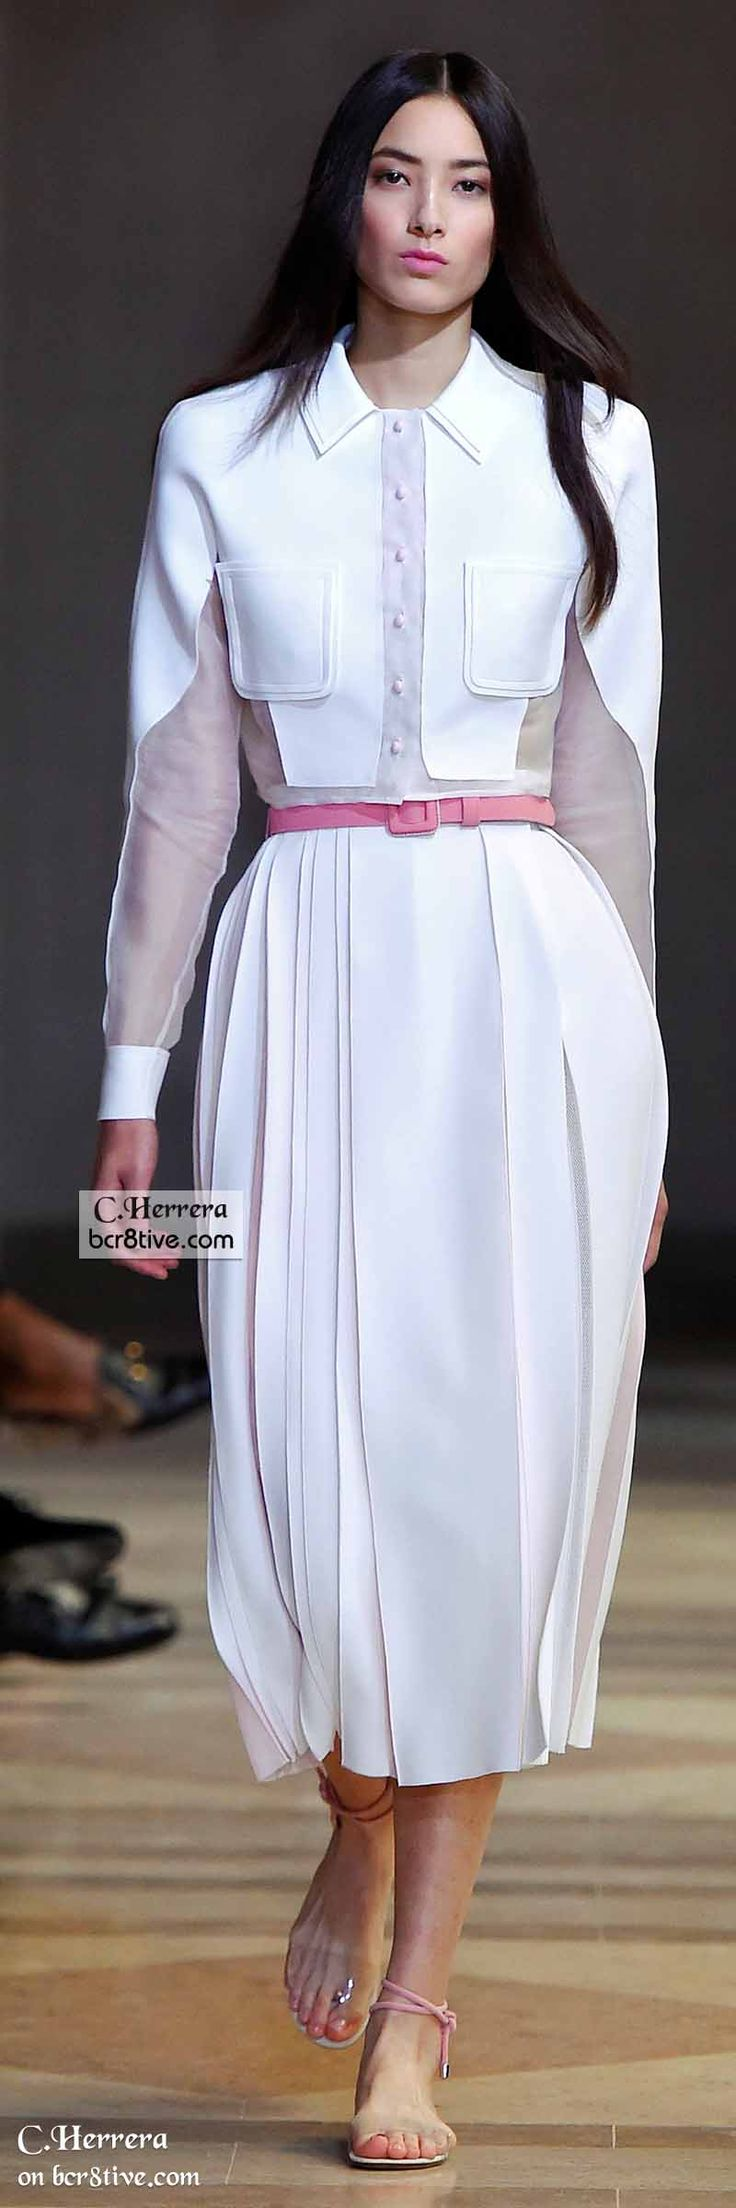 Carolina Herrera Spring 2016 women fashion outfit clothing style apparel @roressclothes closet ideas